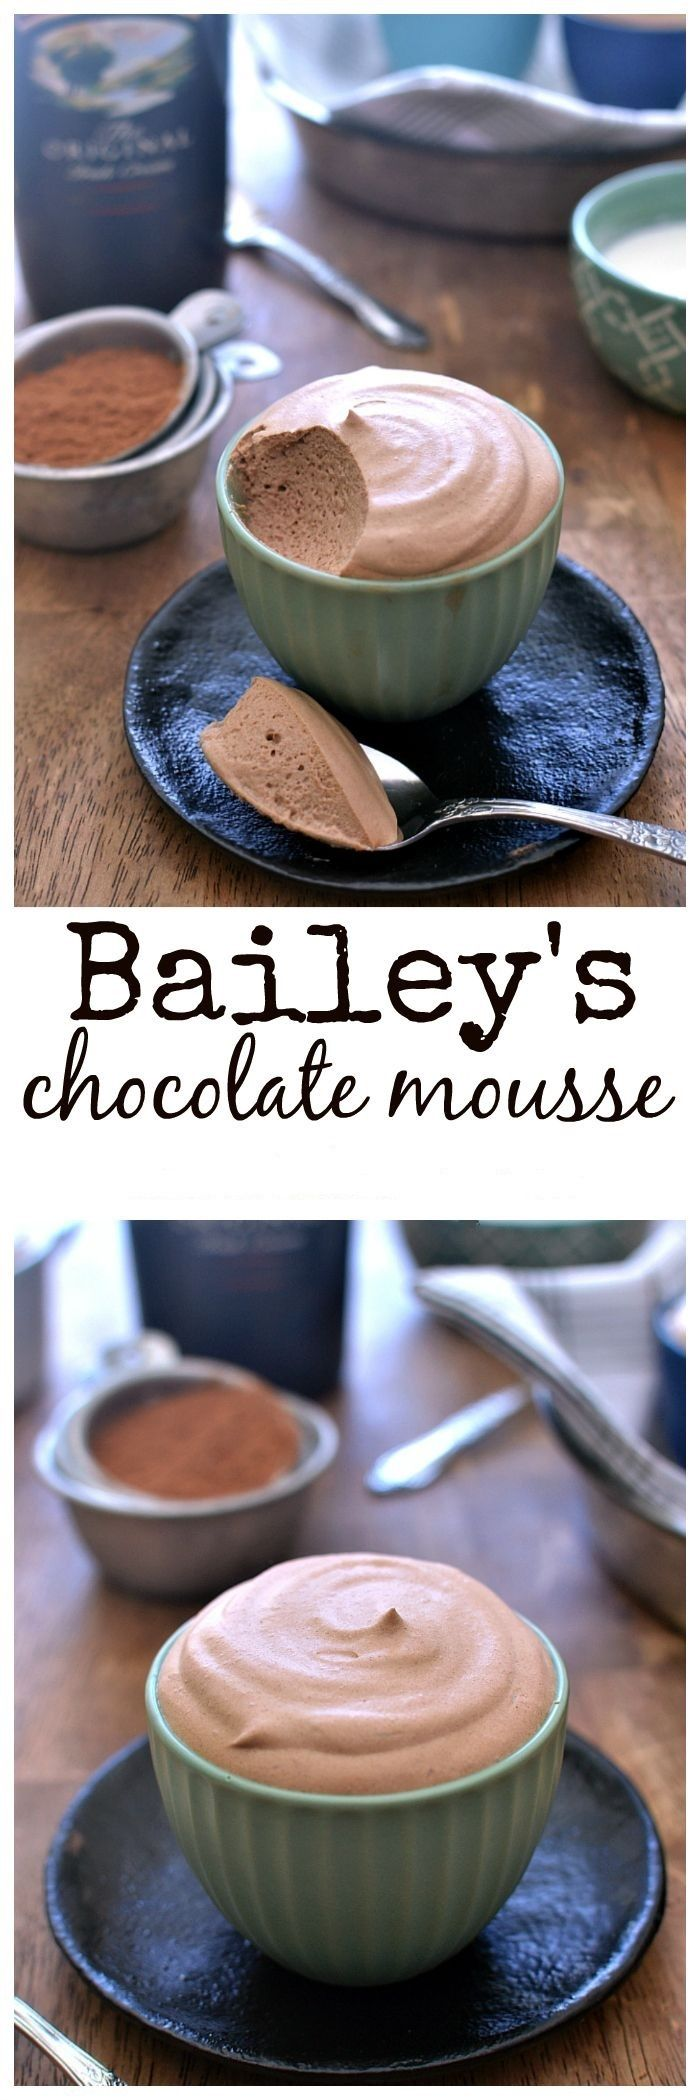 Bailey's Chocolate Mousse